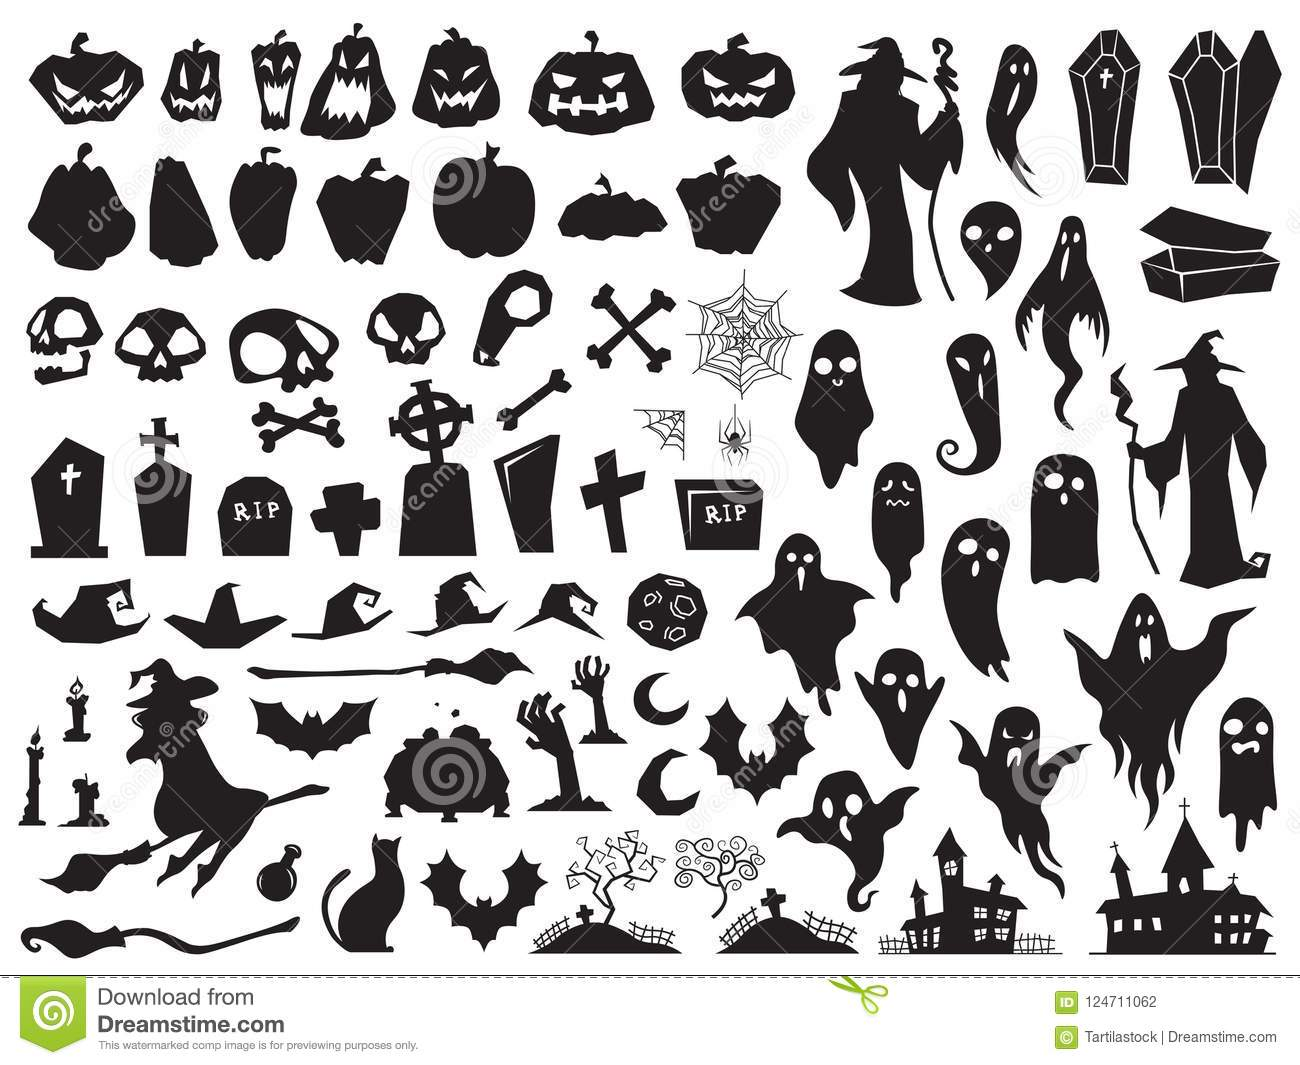 Halloween silhouettes. Spooky evil witch, creepy grave coffin and wizard silhouette. Pumpkin, spider and ghost vector